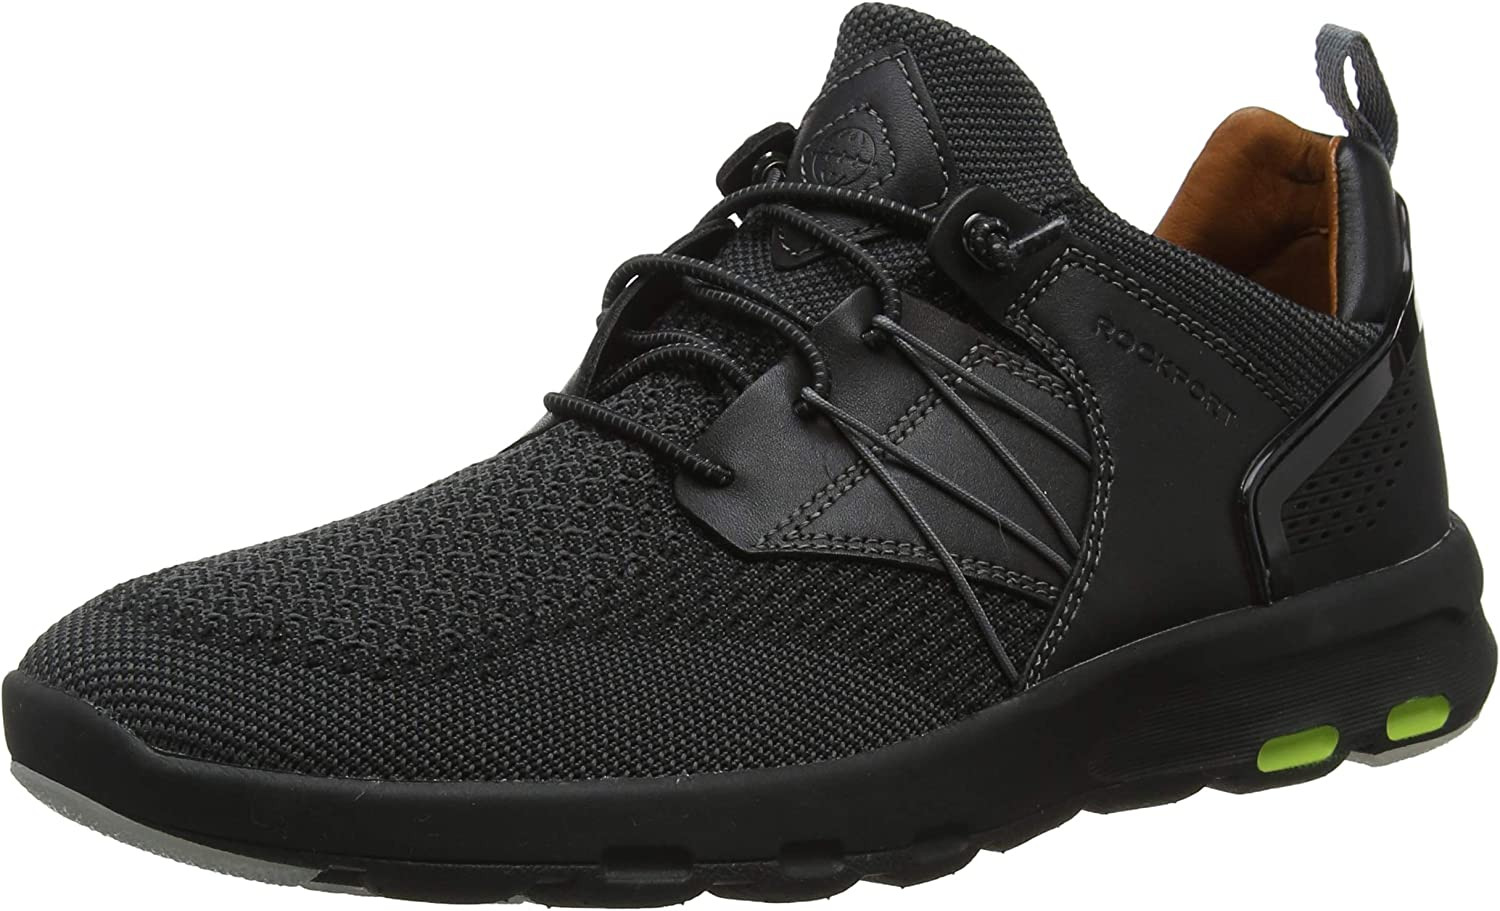 Rockport Men's Lets Walk Mesh Bungee Trainers